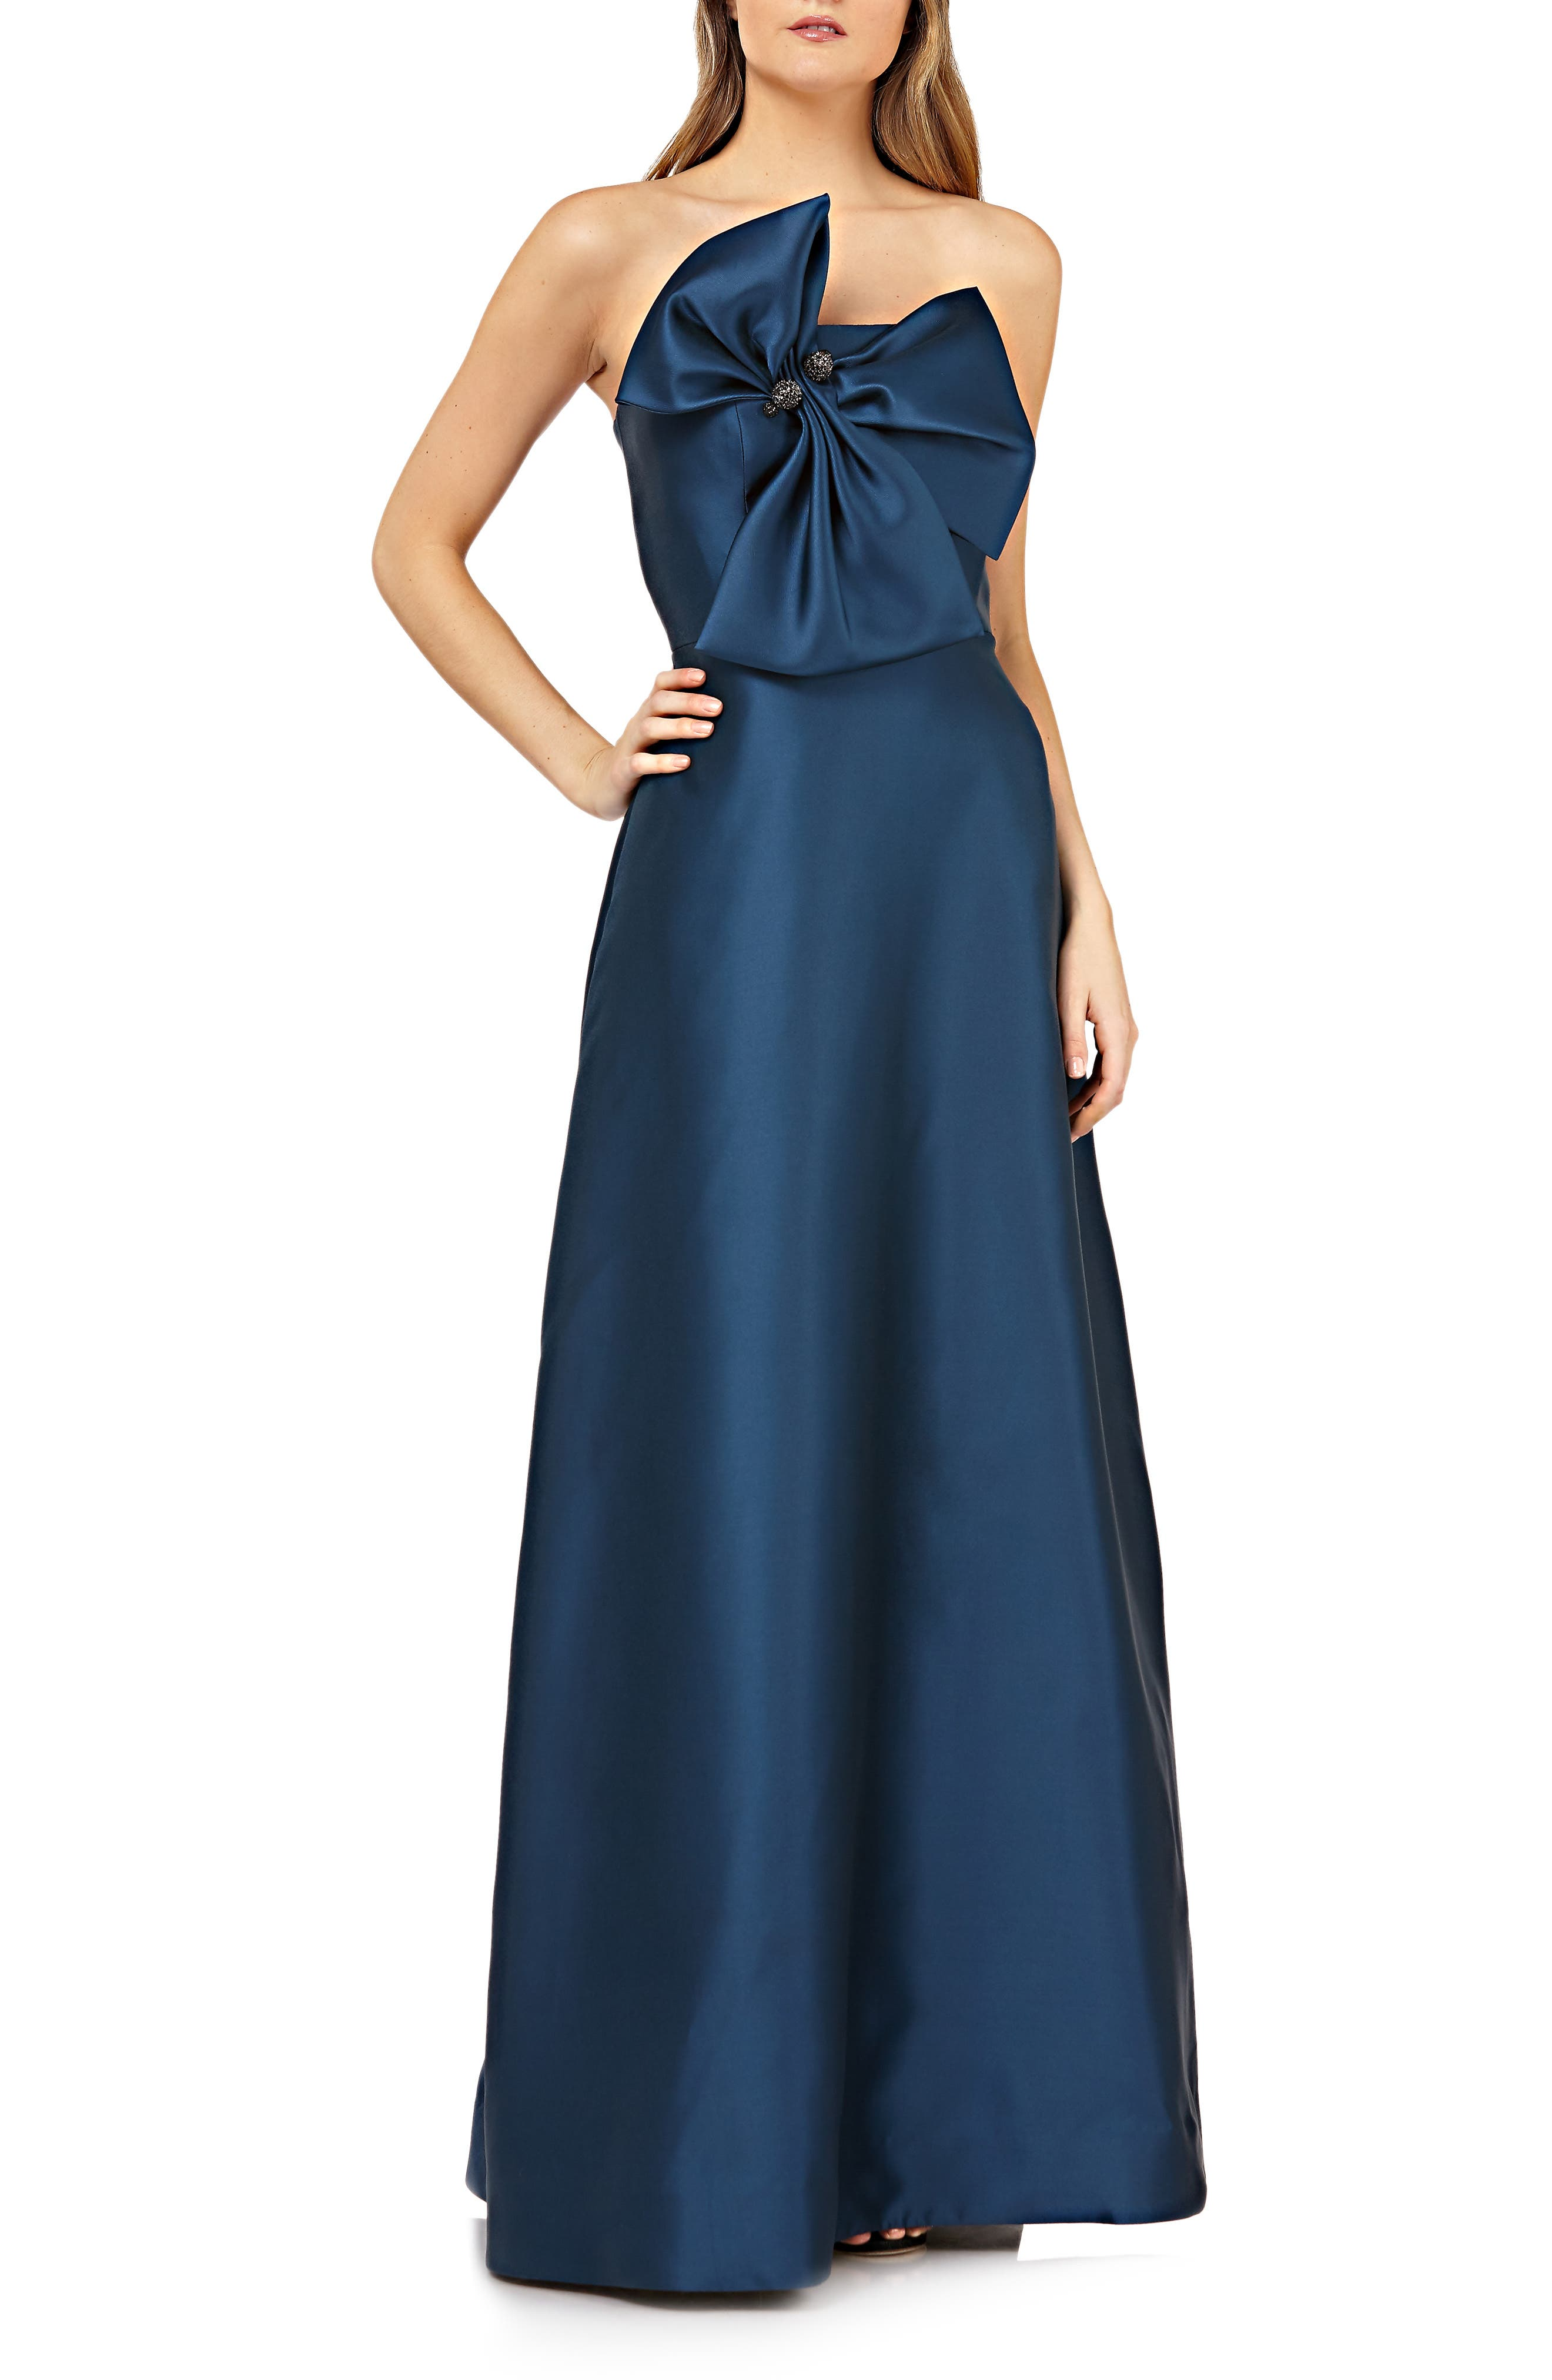 Kay Unger Bow Front Straplles Mikado Evening Dress, Blue